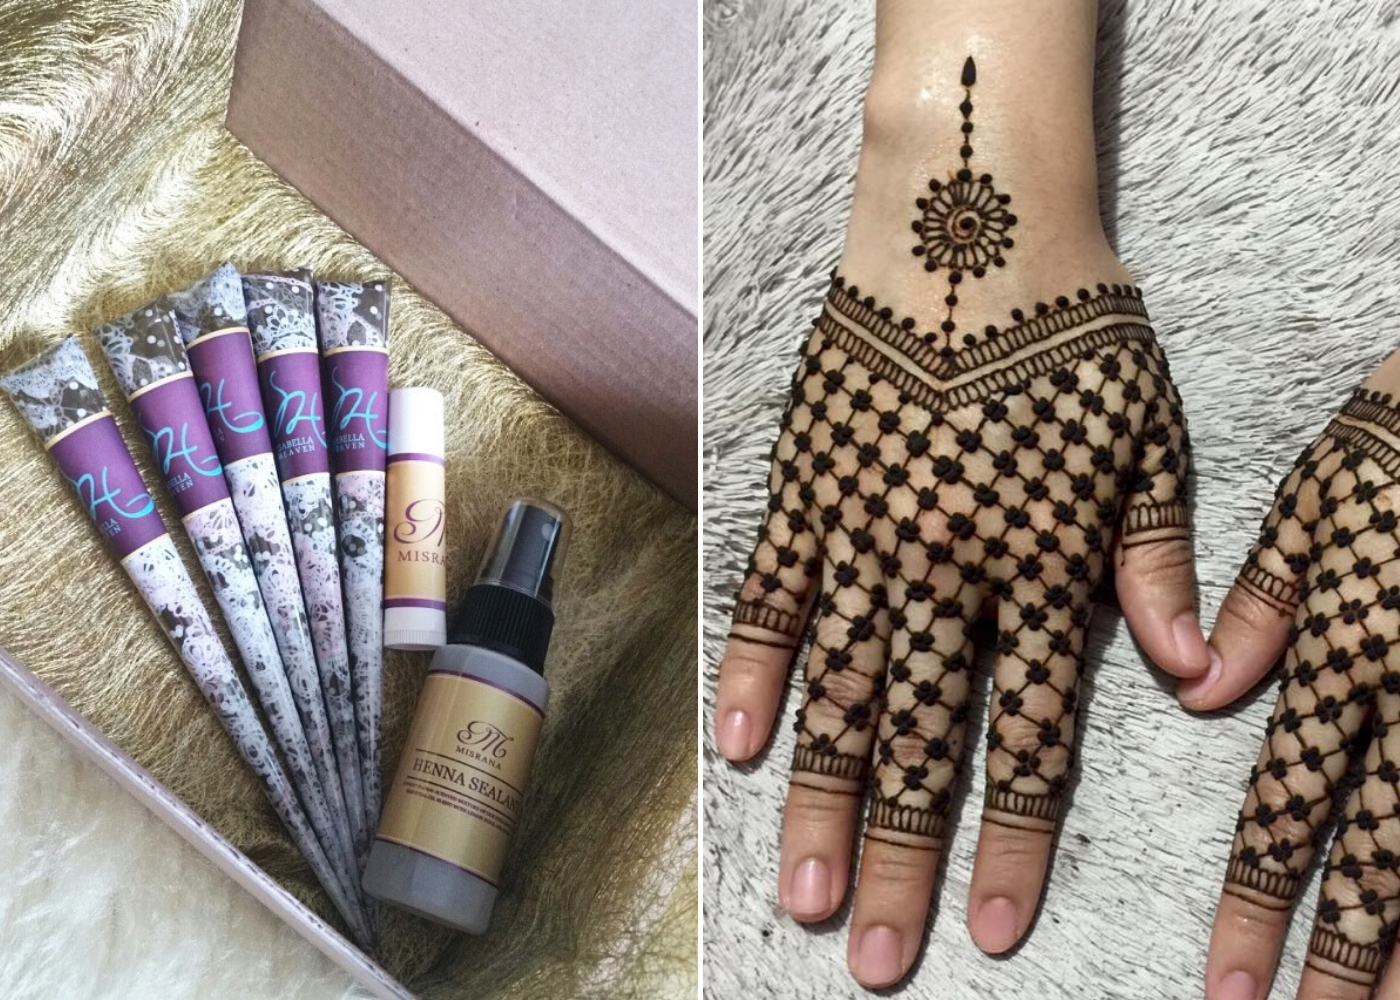 Henna artists in Singapore: FauzellAArtistry